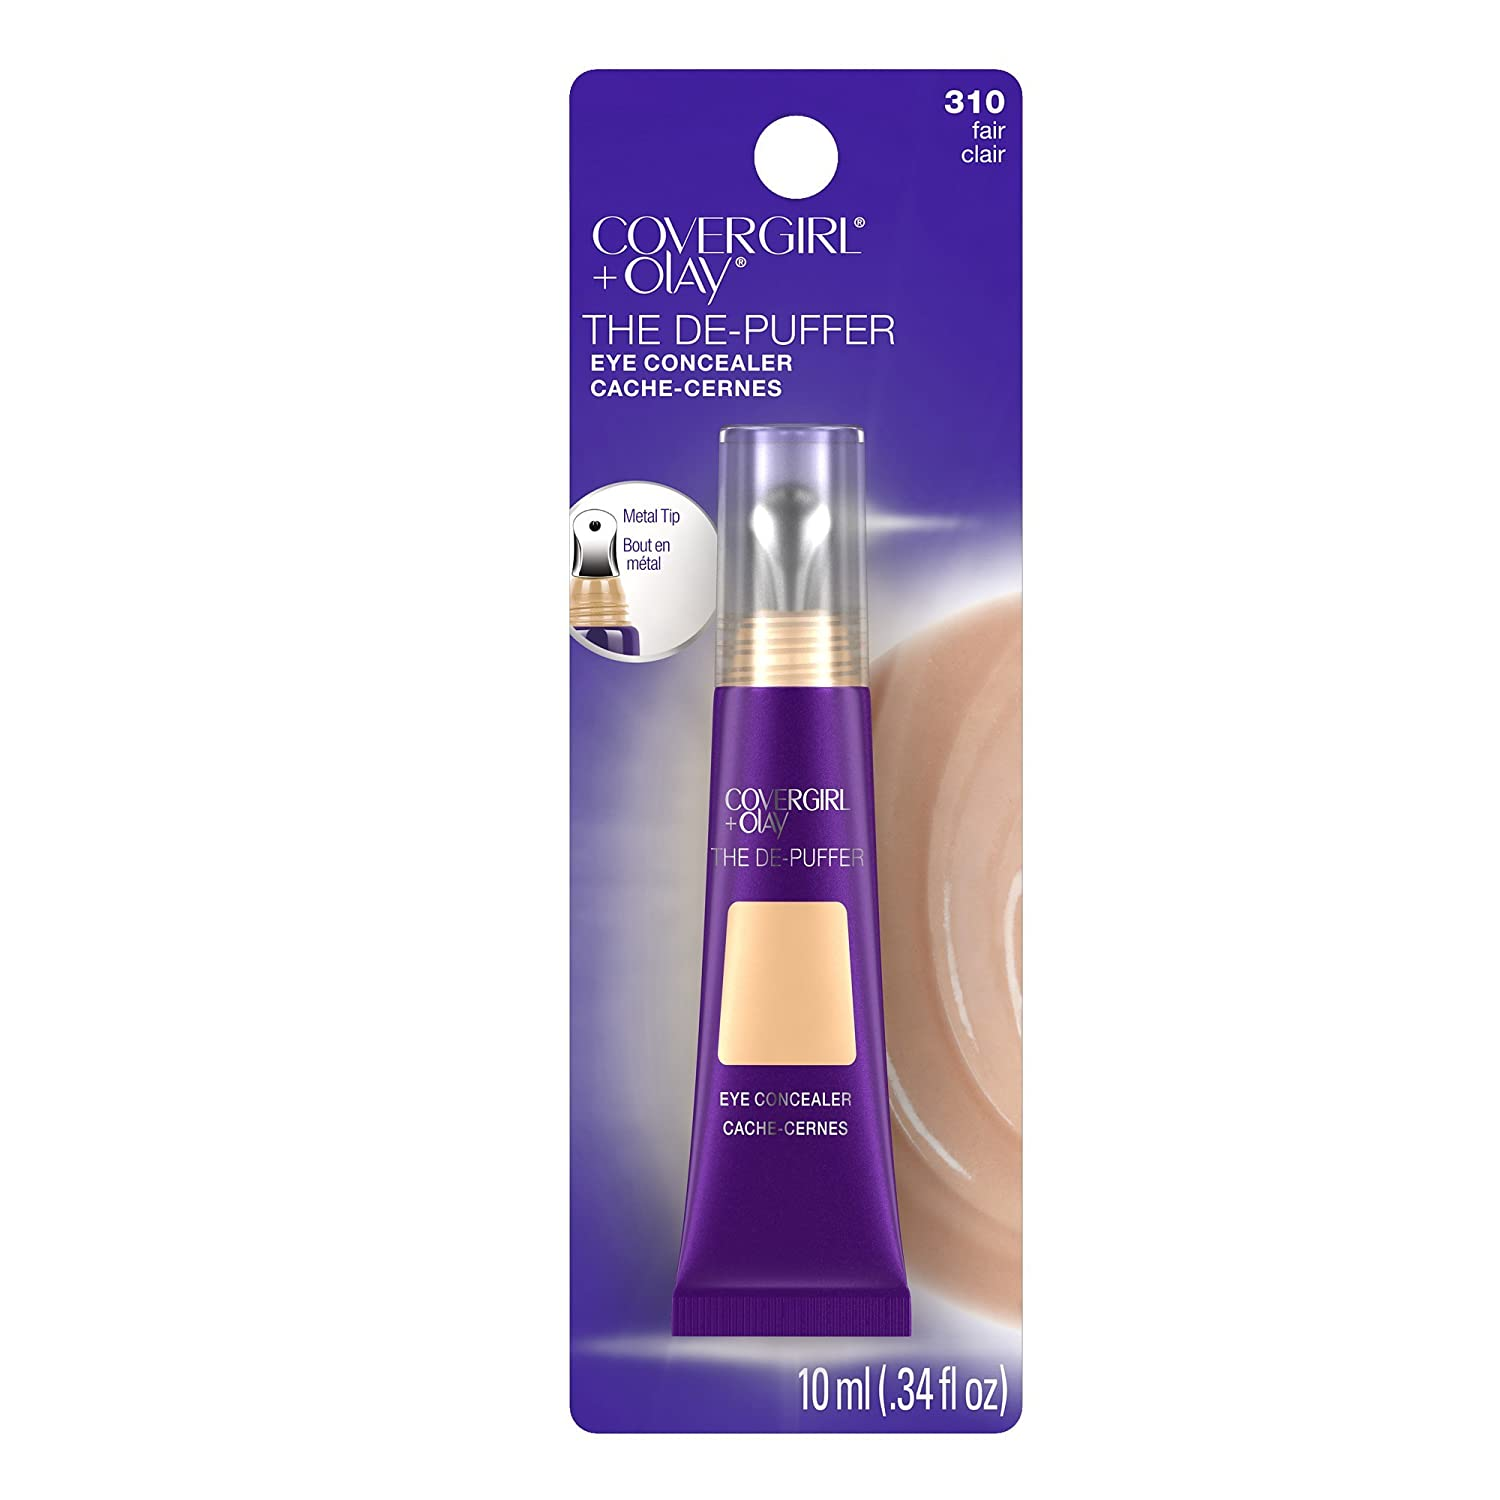 COVERGIRL+Olay The Depuffer Fair 310, .3 oz, Old Version (packaging may vary)